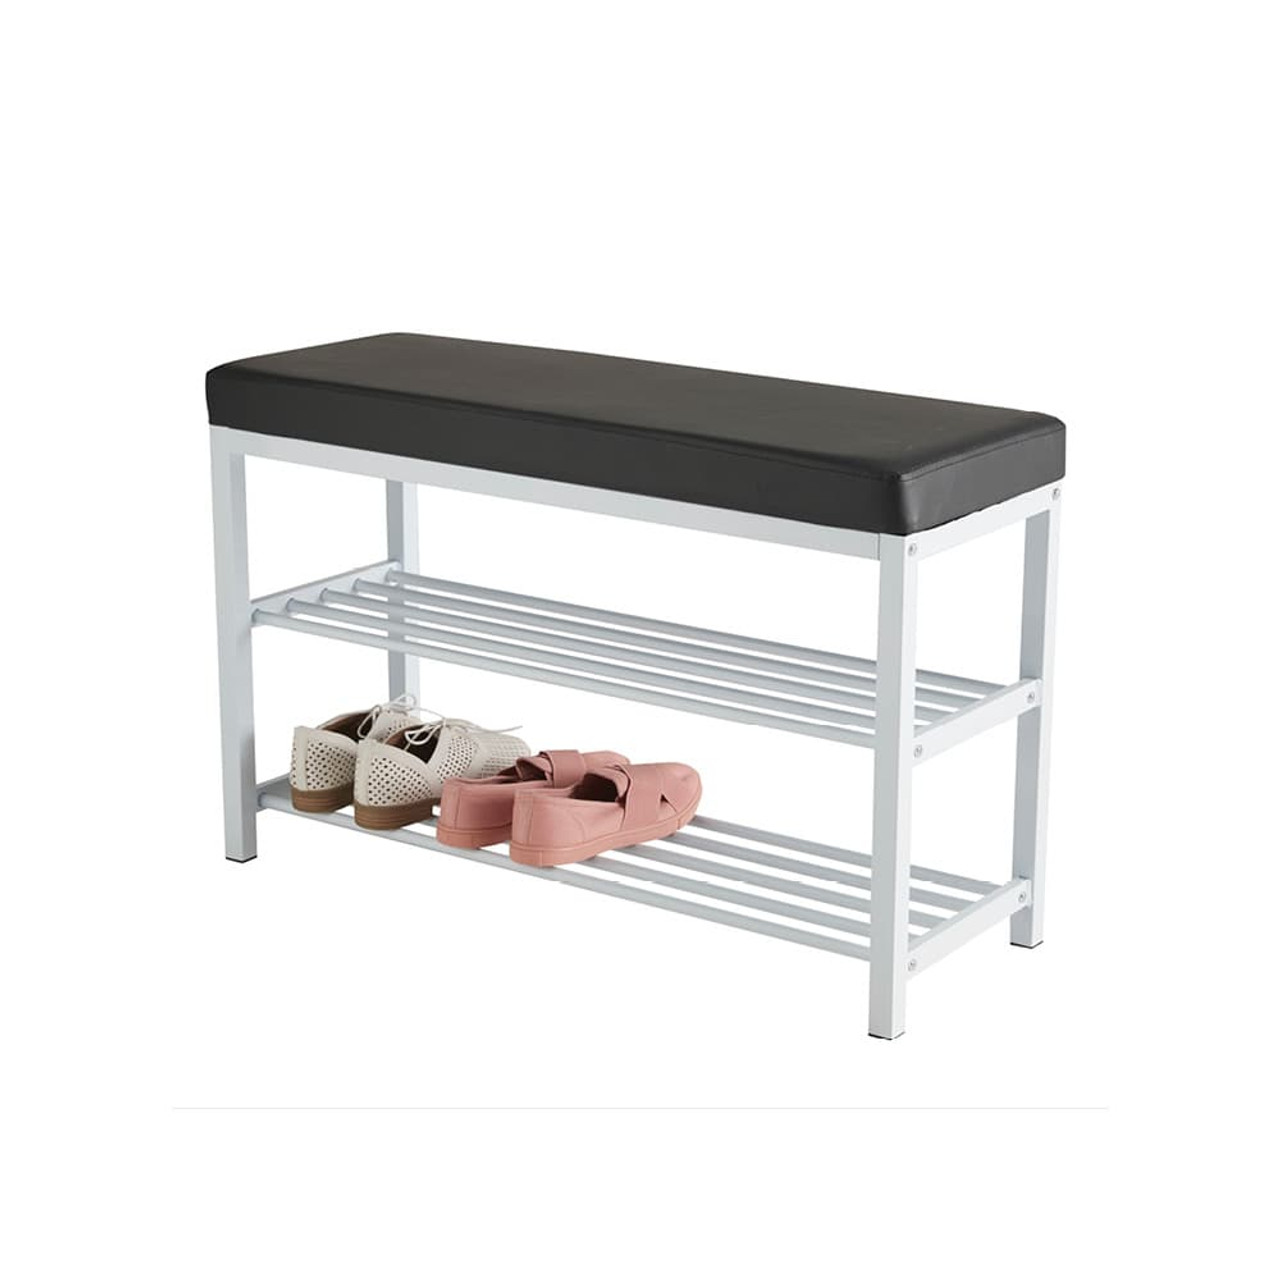 howards 2 tier shoe rack with seat